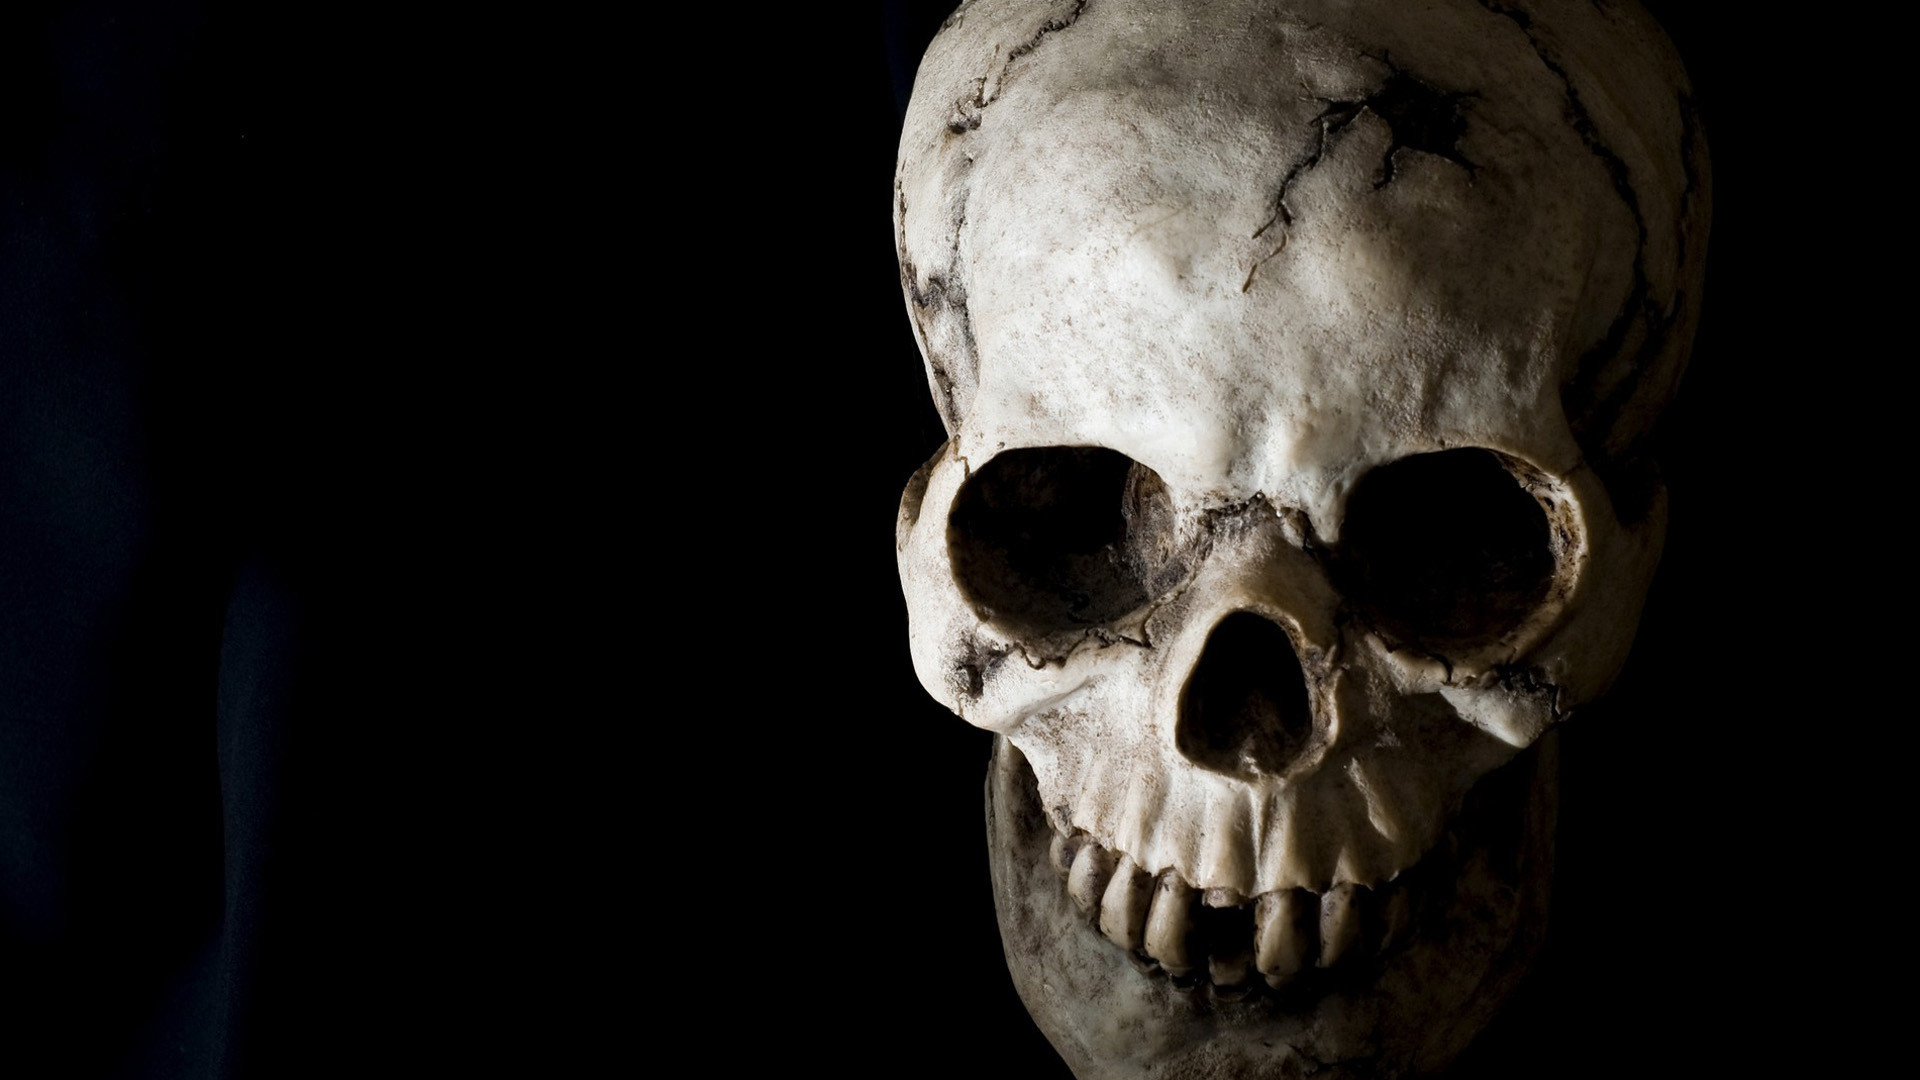 awesome skull wallpapers (51+ images)